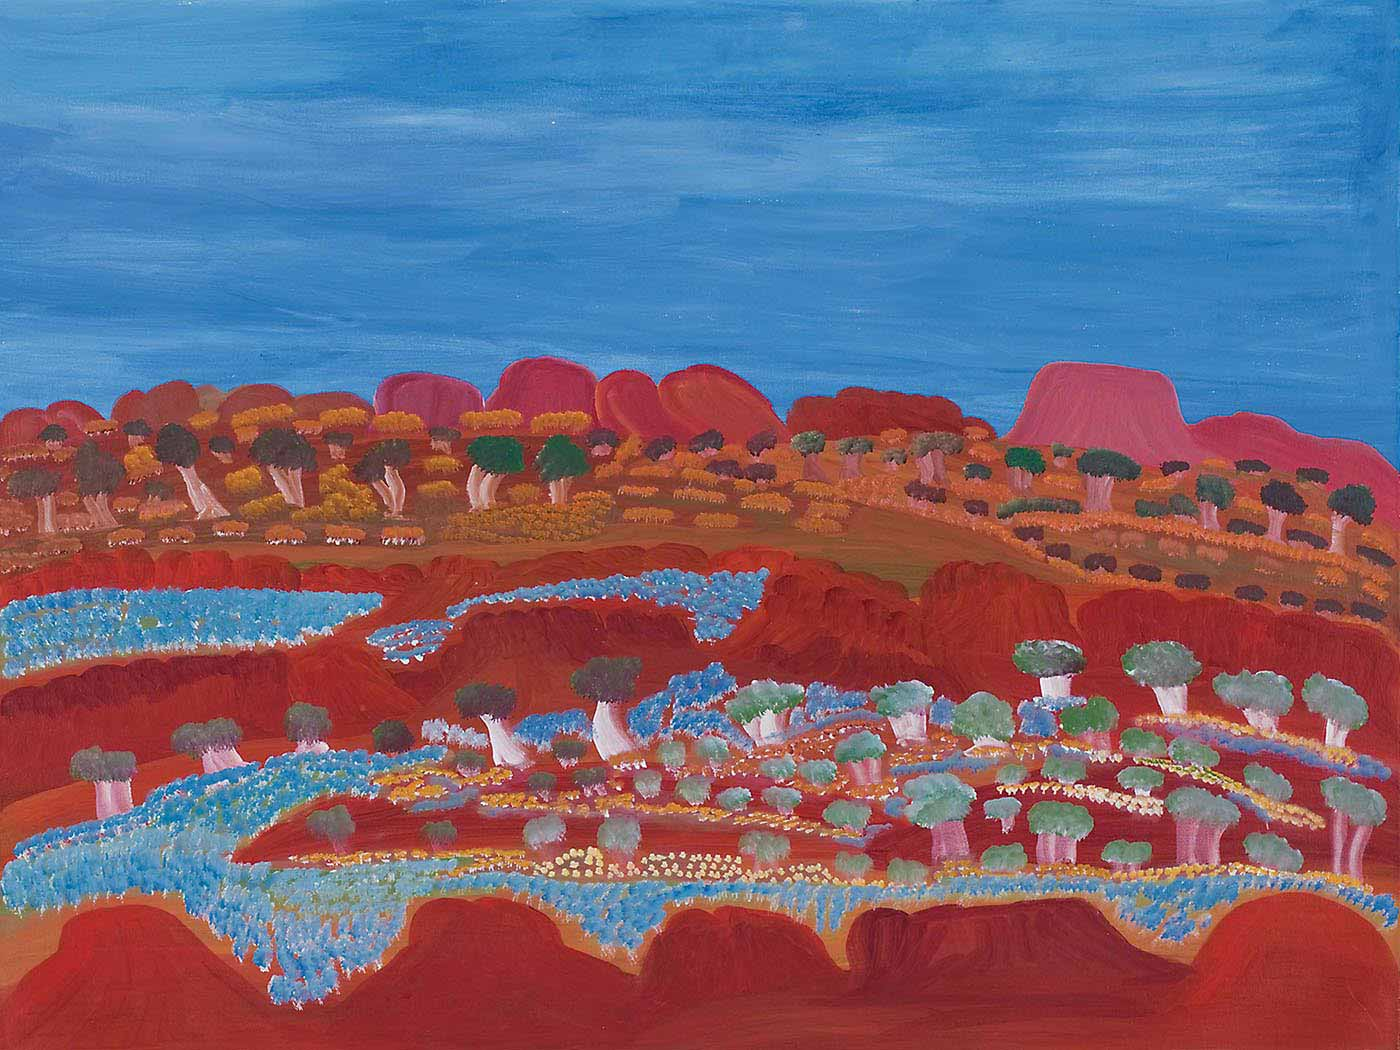 A painting on canvas with a range of orange-red rock formations lying low against a blue sky backdrop. In front of the formations are green and light brown trees and yellow-brown grass-like foliage. In the foreground are two horizontal rows of orange-red rock formations creating a valley-like appearance. The valley and some of the rock formations are covered in expanses of flowers in blue, yellow and cream as well as trees in green and beige-white. - click to view larger image